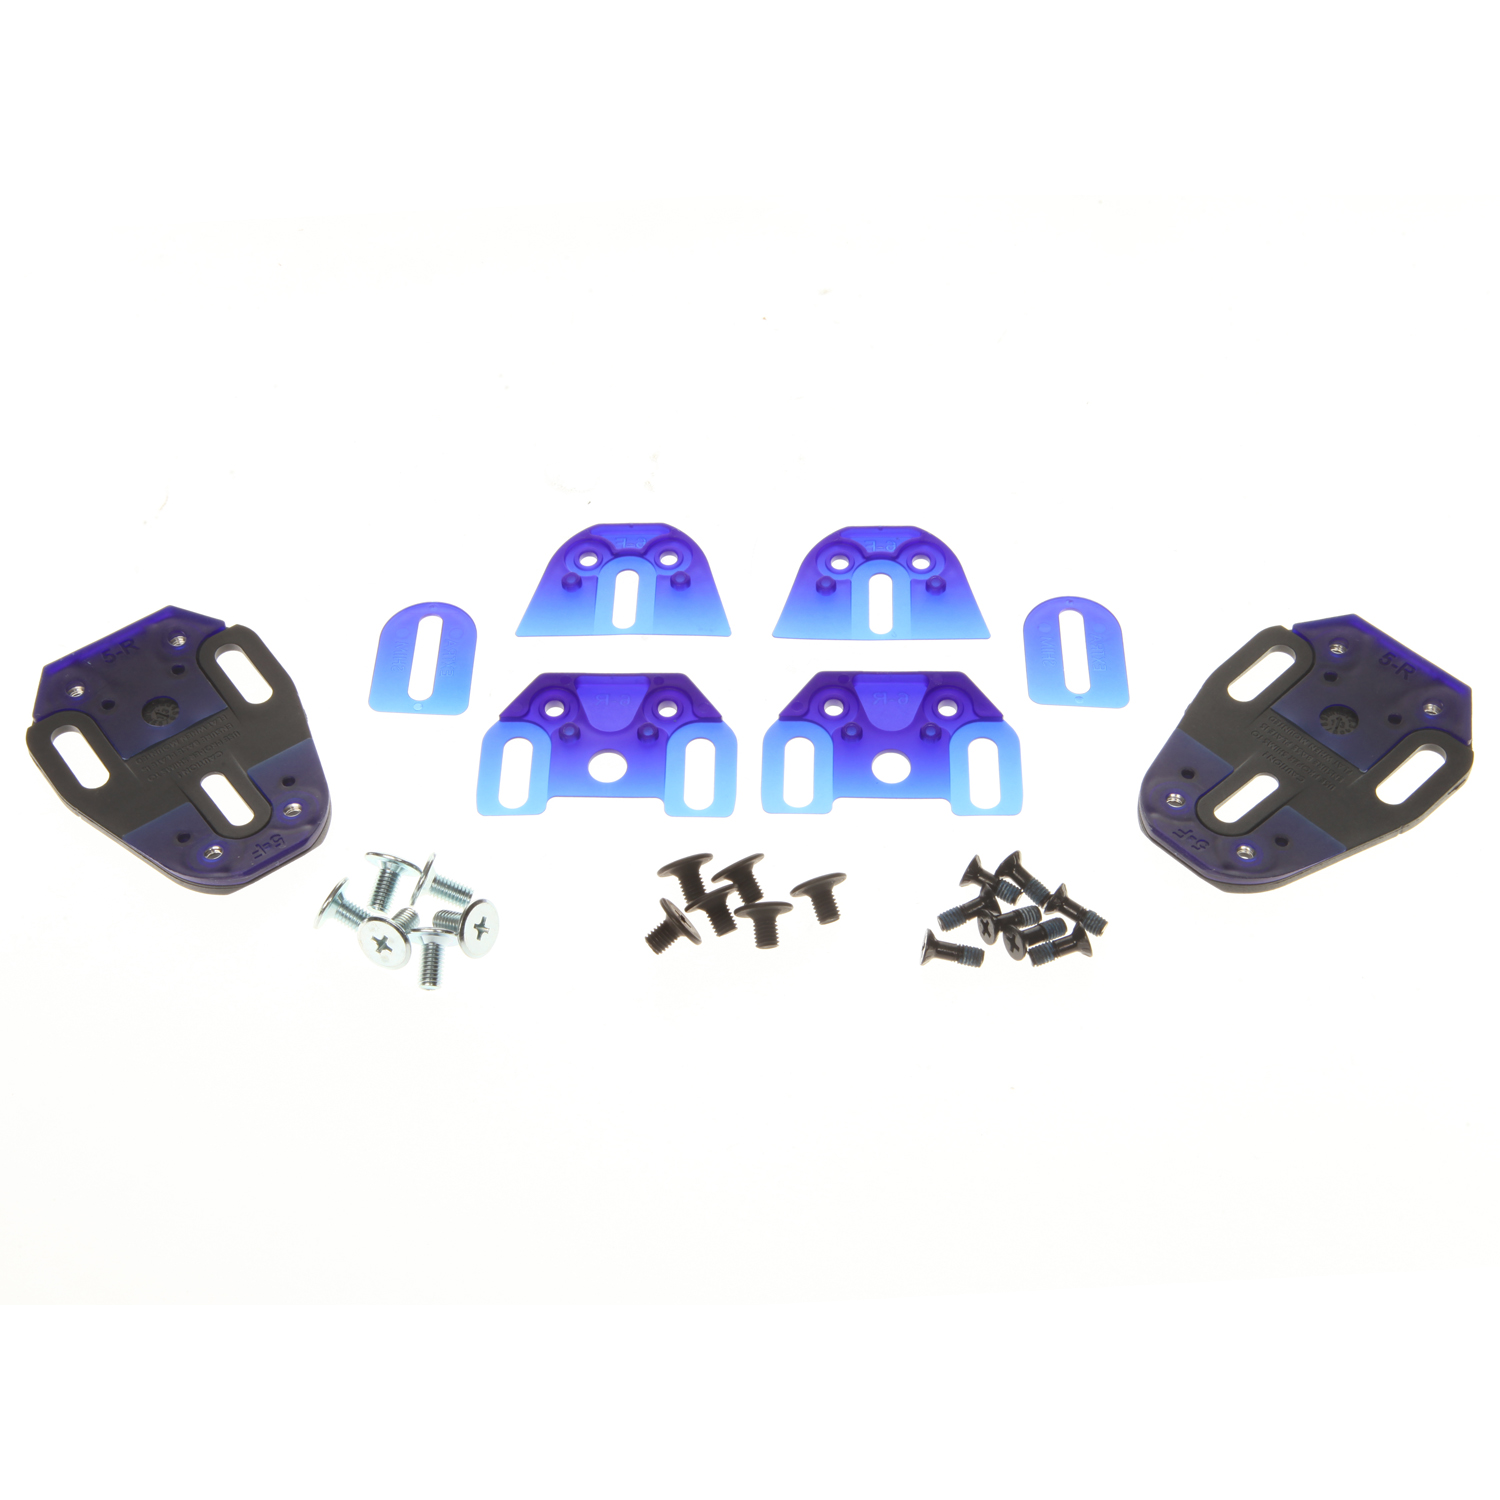 Speedplay - V.2 Cleat Snap Shim Base Plate Kit | Pedal cleats